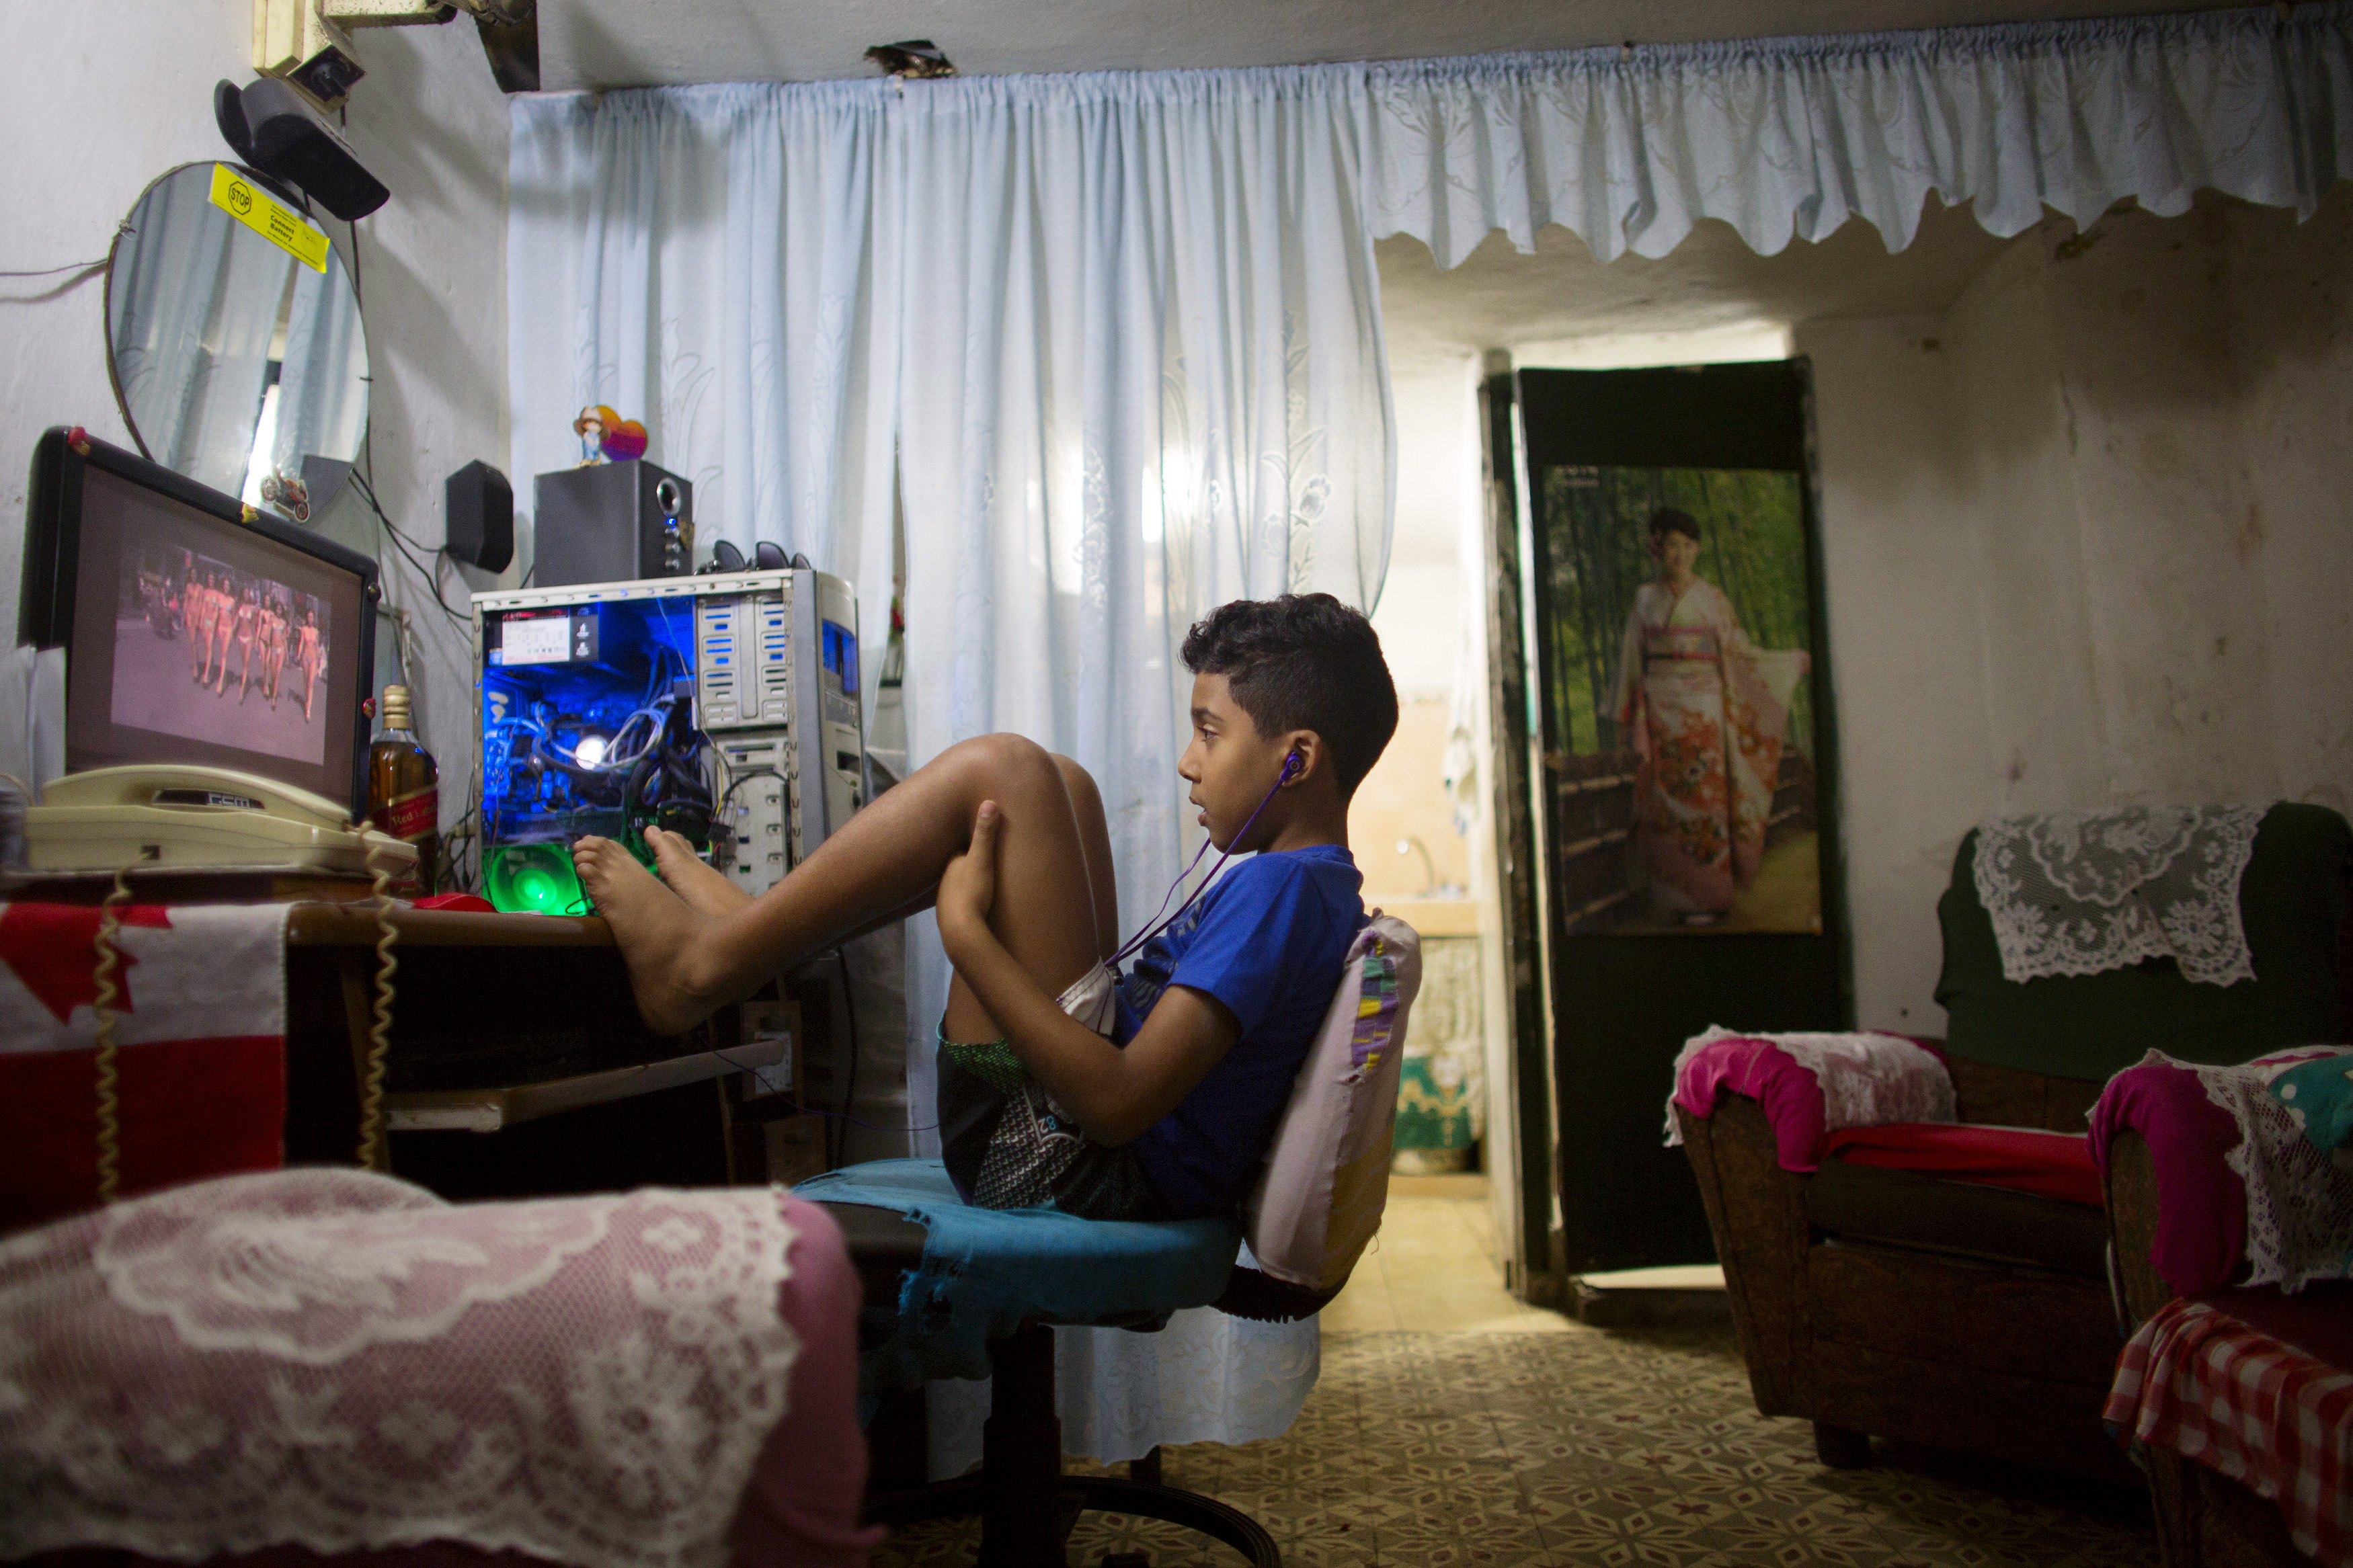 Havana resident Kevin Lachaise watches a recorded TV show on a computer screen in the living room of his home.